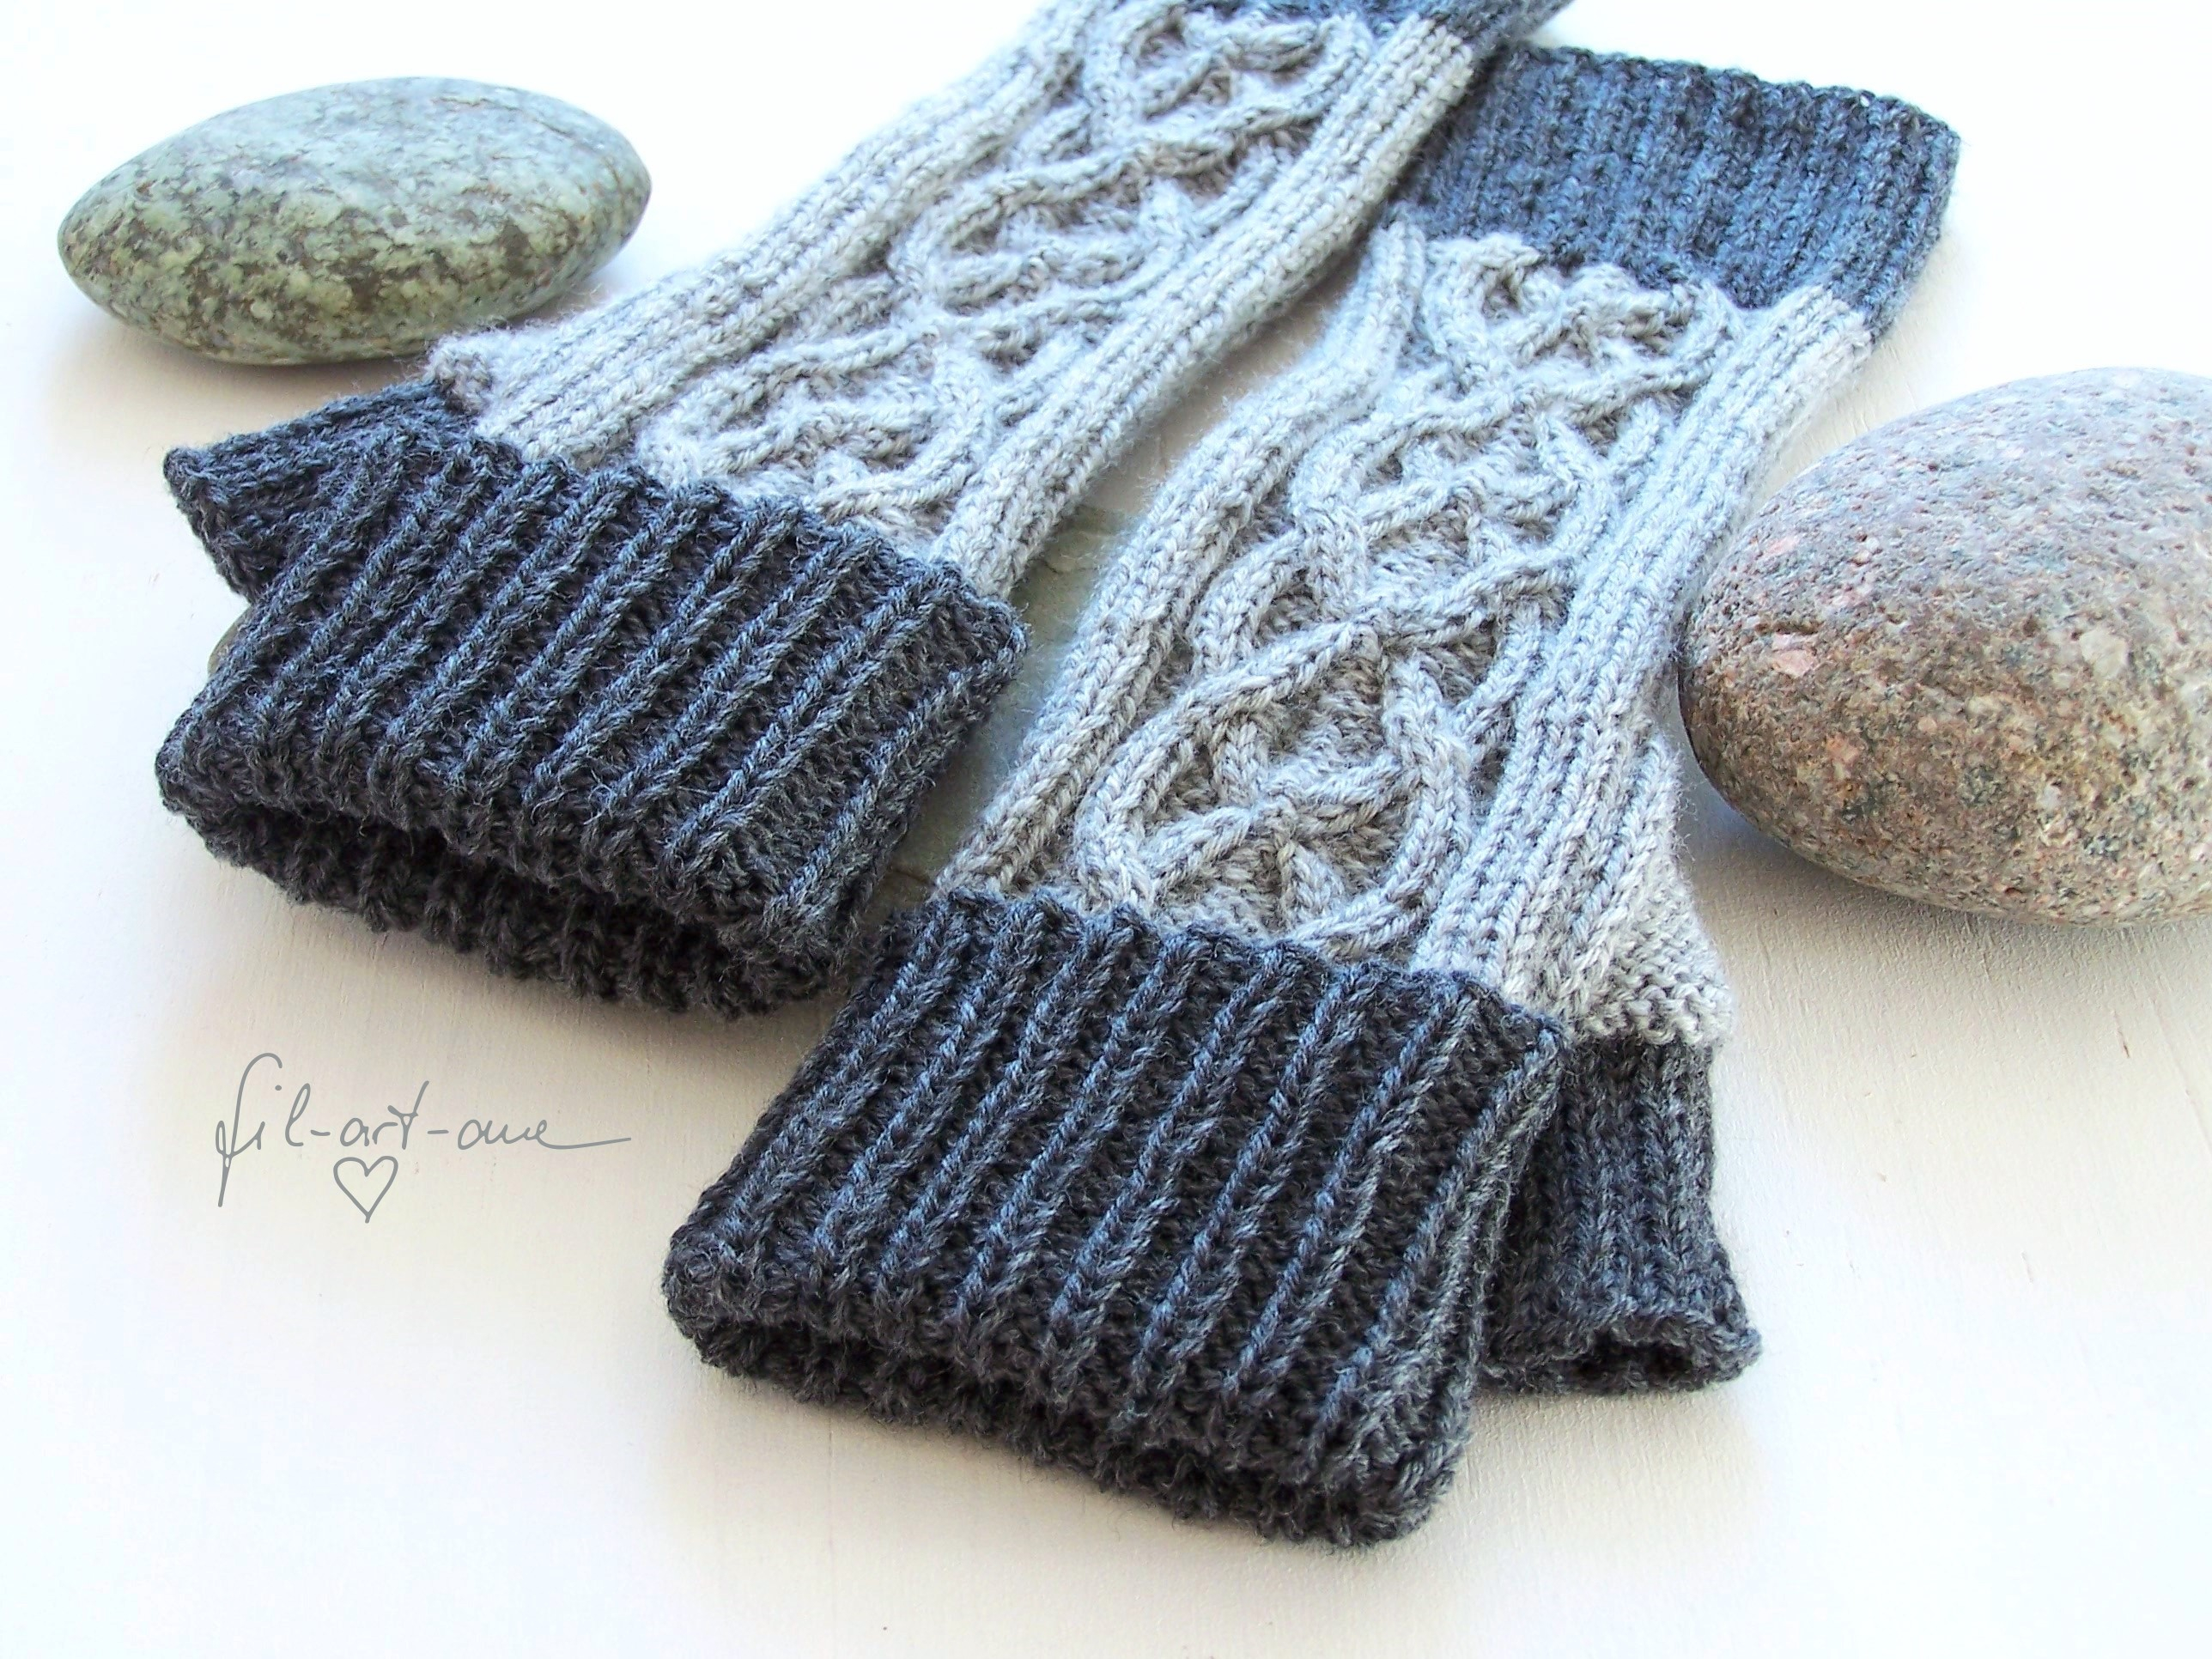 Knitting Pattern For Gloves Knitting Pattern Fingerless Mitts With Celtic Cables For Him And Her 3 Sizes